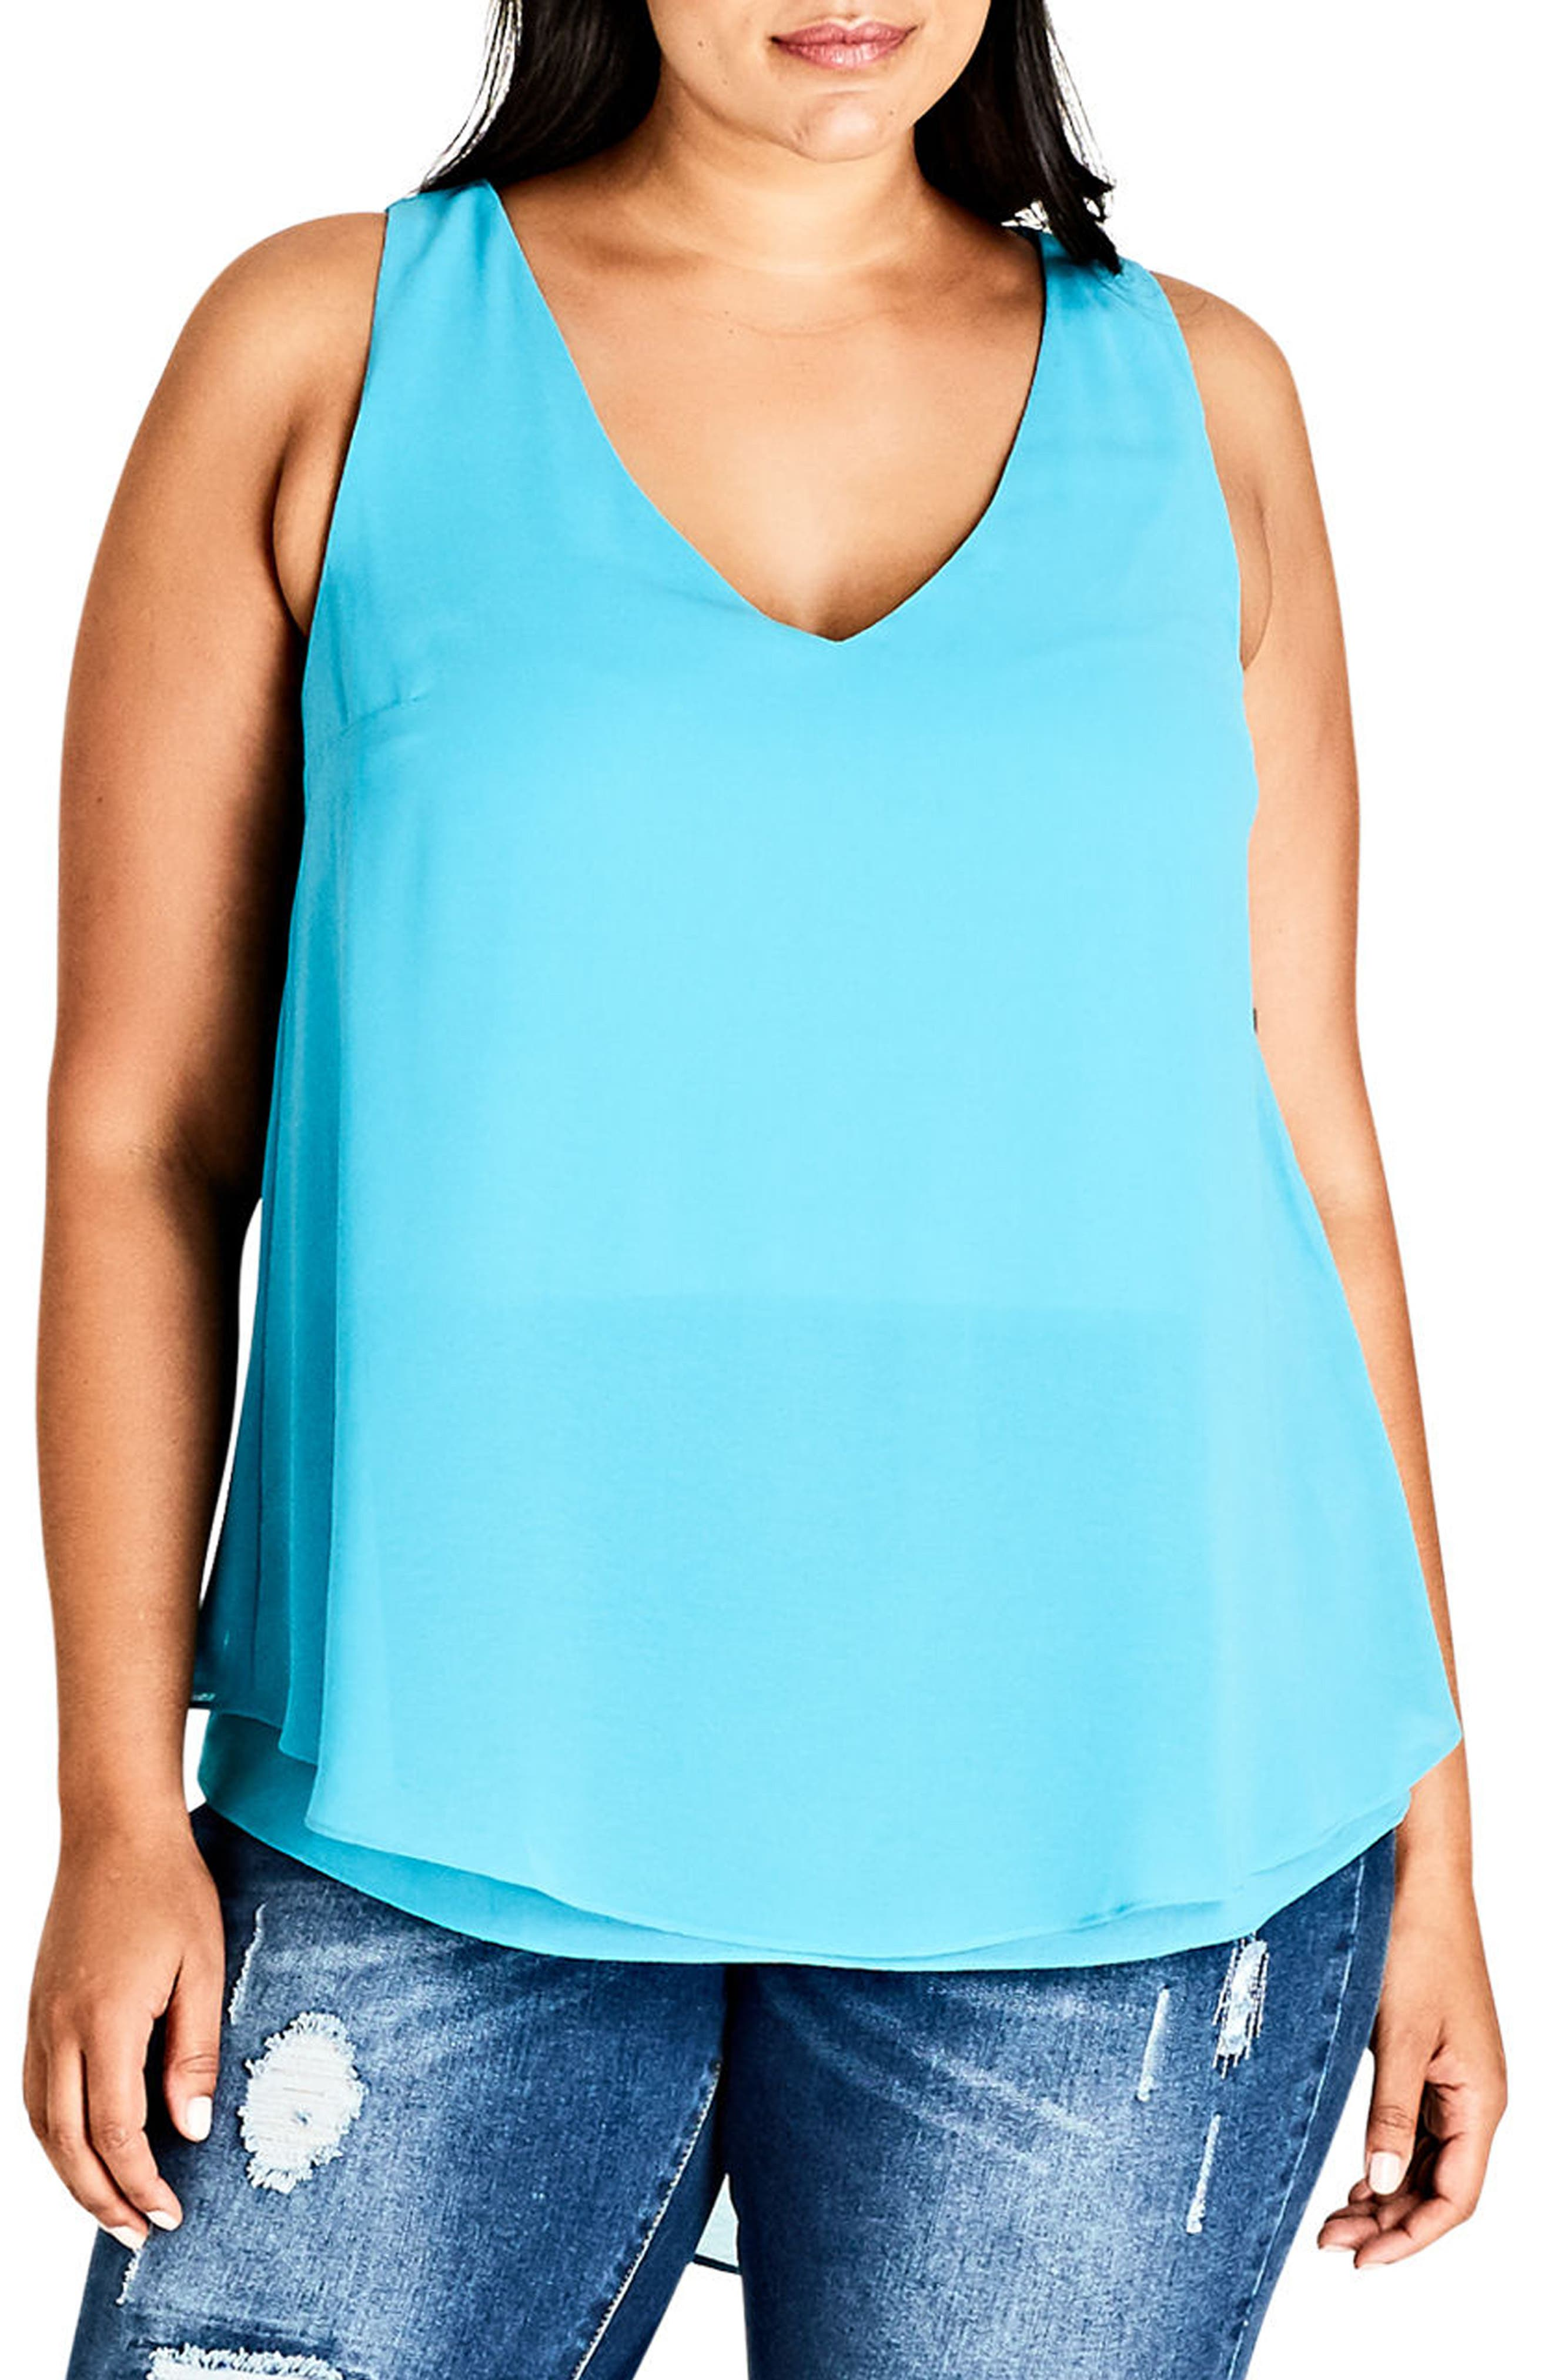 Alternate Image 1 Selected - City Chic Date Night Top (Plus Size)